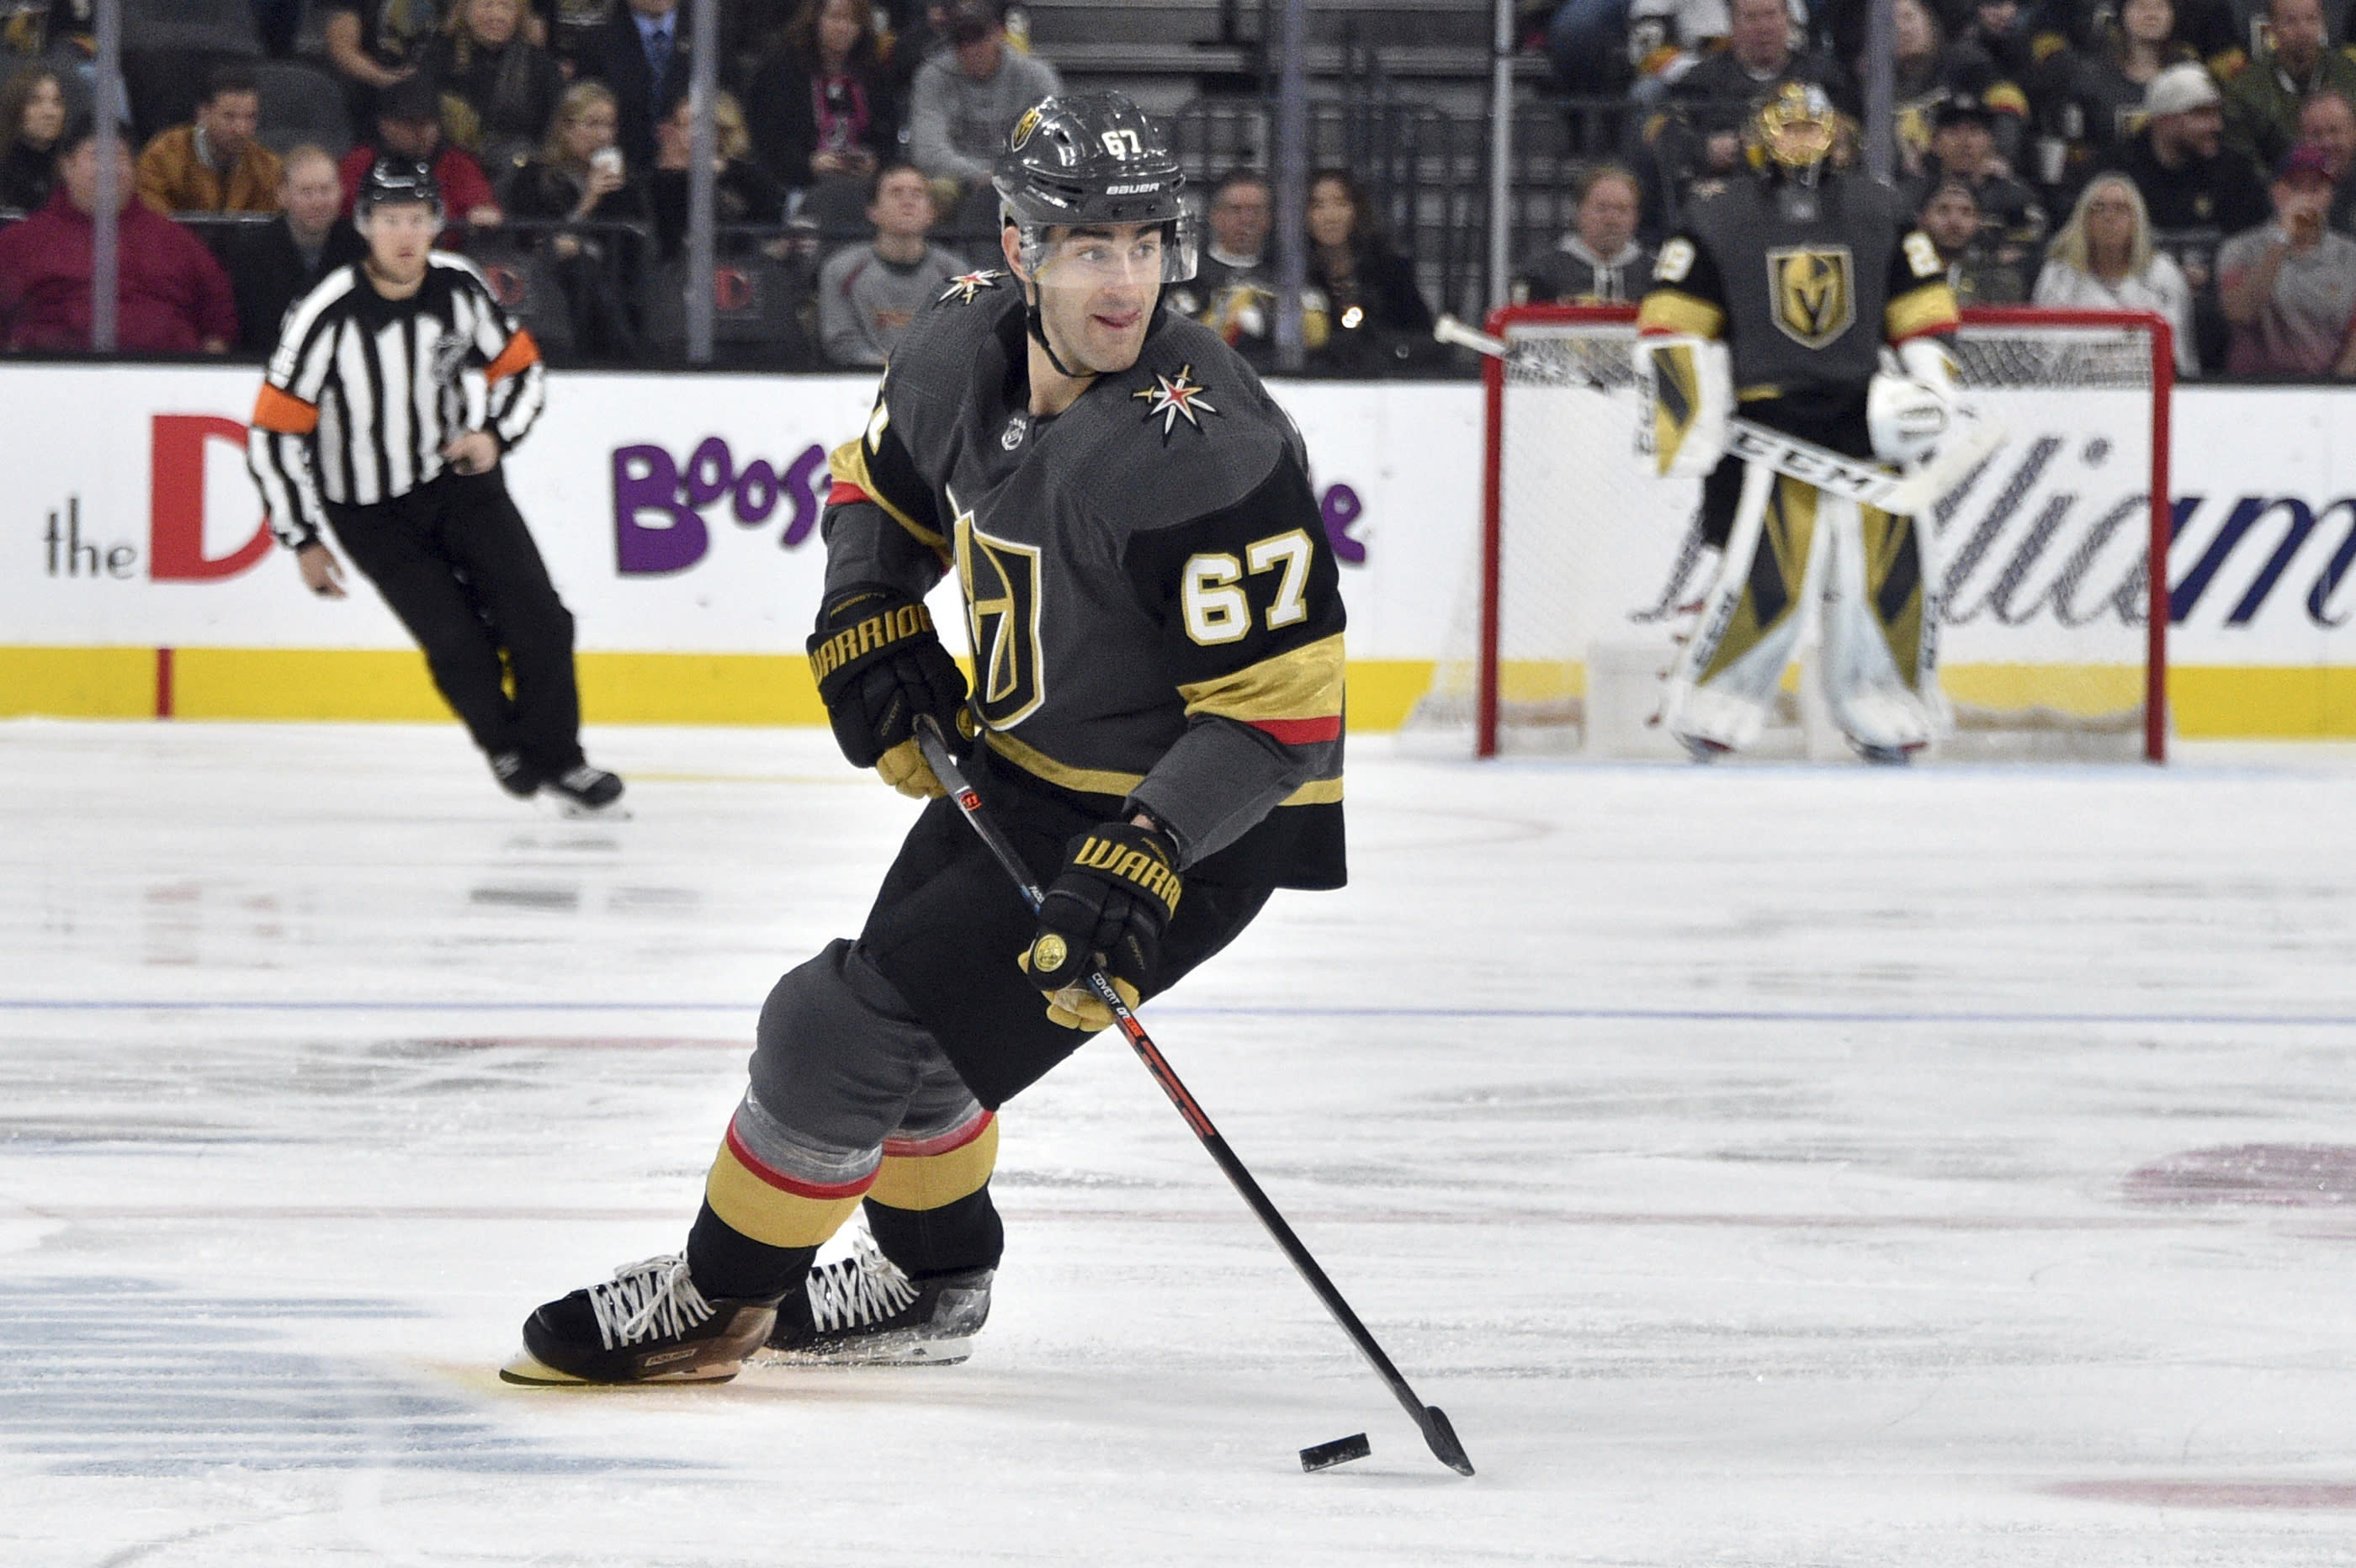 FILE - In this Saturday, Feb. 8, 2020 file photo, Vegas Golden Knights left wing Max Pacioretty (67) skates with the puck against the Carolina Hurricanes during the second period of an NHL hockey game in Las Vegas. The Dallas Stars were in a miserable stretch when the NHL season came to a sudden and unexpected stop 4 1/2 months ago. Vegas was playing some of its best hockey after a coaching change. Both now have the same chance of being the No. 1 seed in the Western Conference playoffs, and a better chance to re-acclimate to playing again than having to jump right into a playoff series for the resumption of this unprecedented season because of the coronavirus.(AP Photo/David Becker, File)